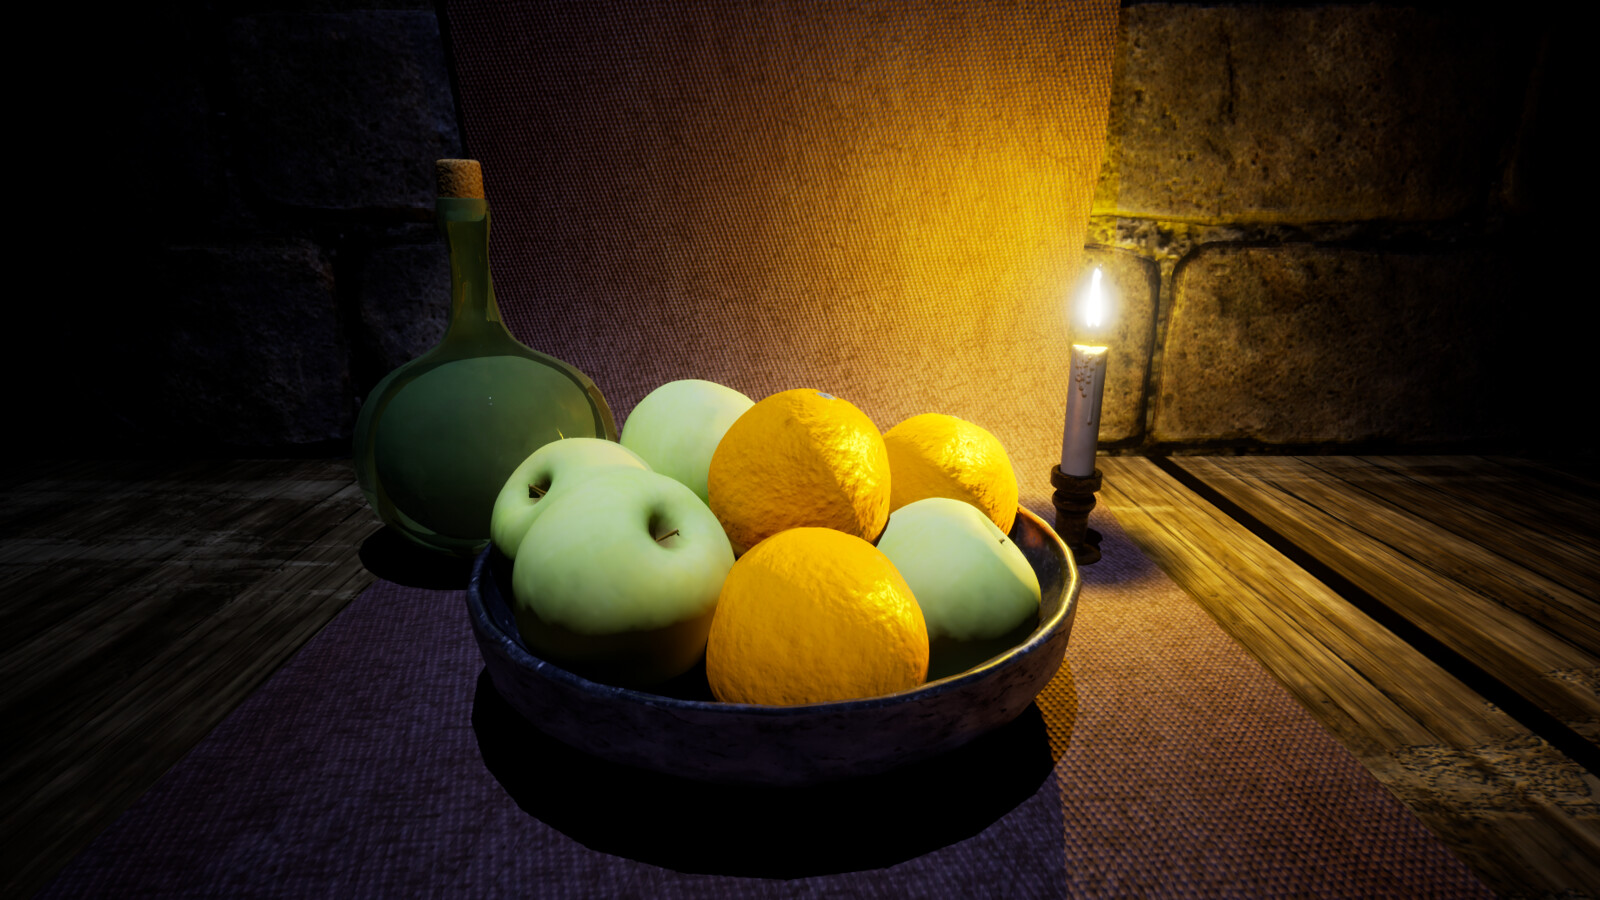 Material used as wood table applied in Unreal Engine 4.